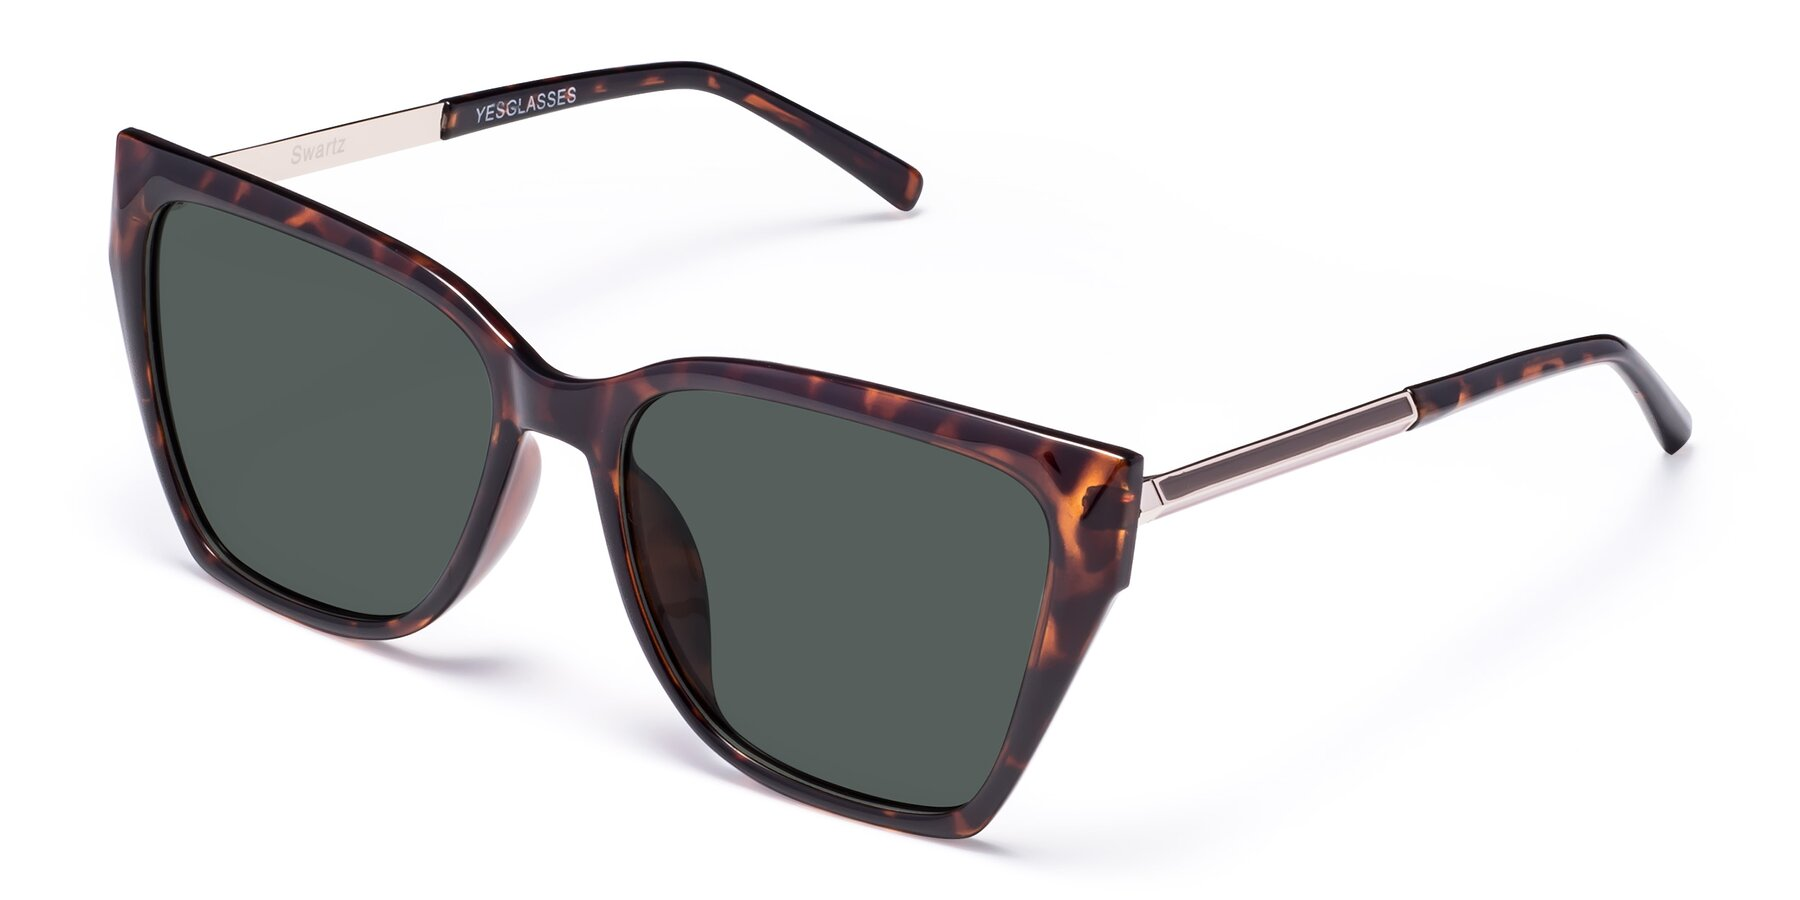 Angle of Swartz in Tortoise with Gray Polarized Lenses